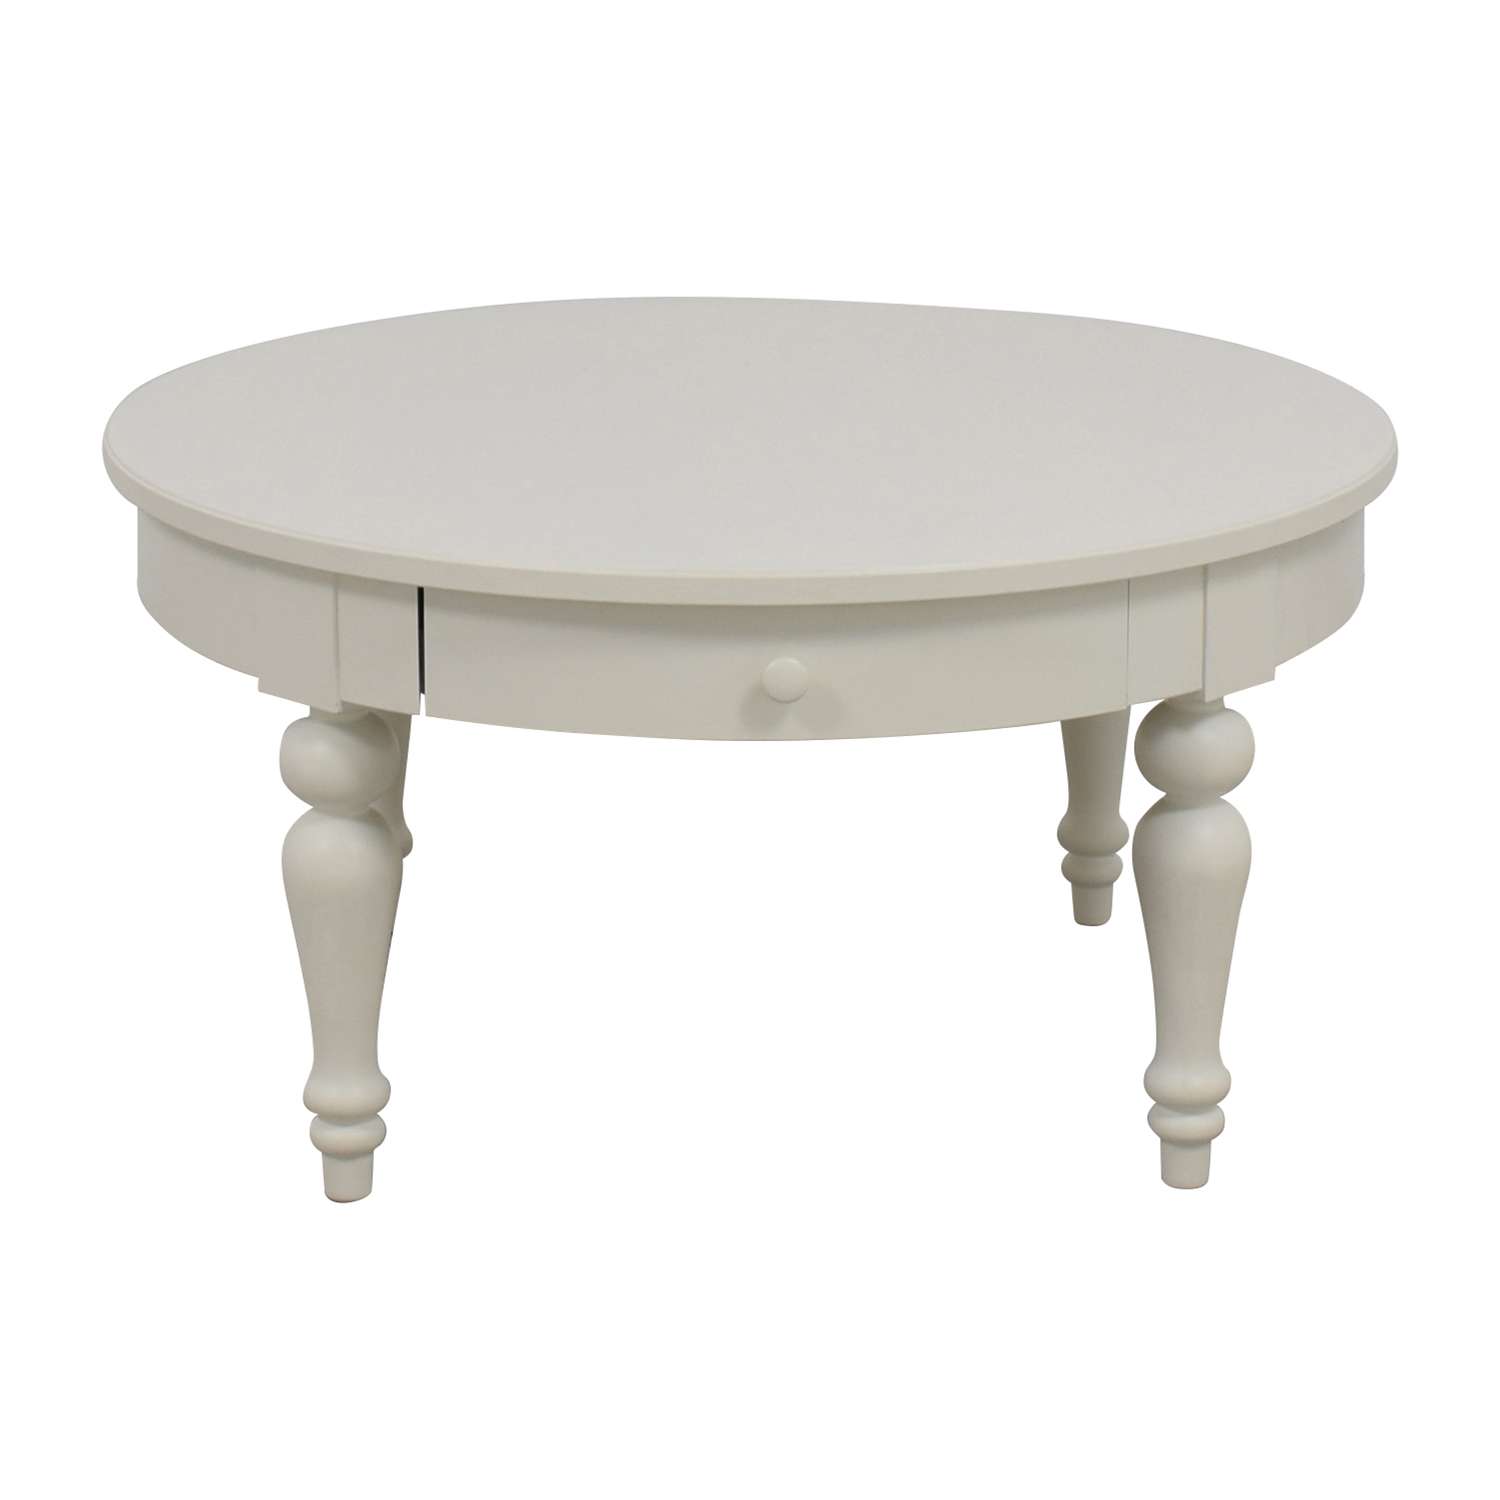 Buy IKEA White Round Coffee Table IKEA Tables ...